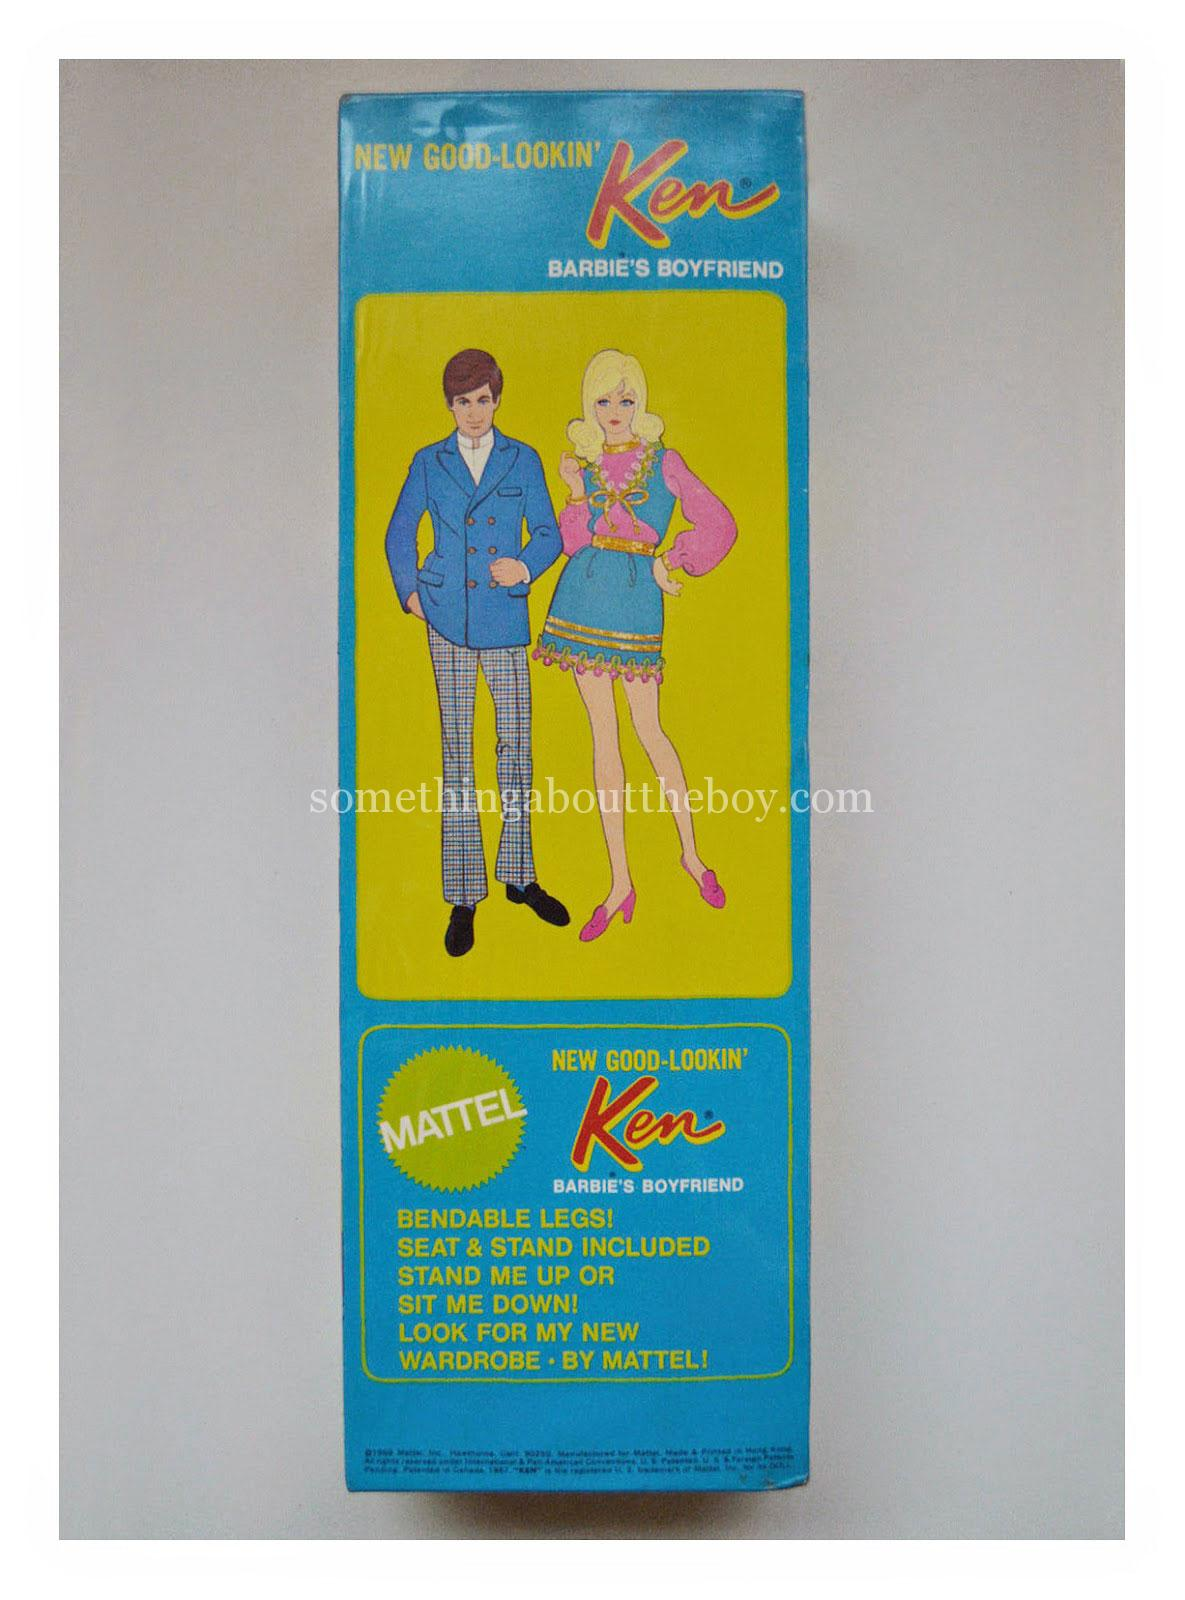 1971 #1124 New Good-Lookin' Ken in original packaging